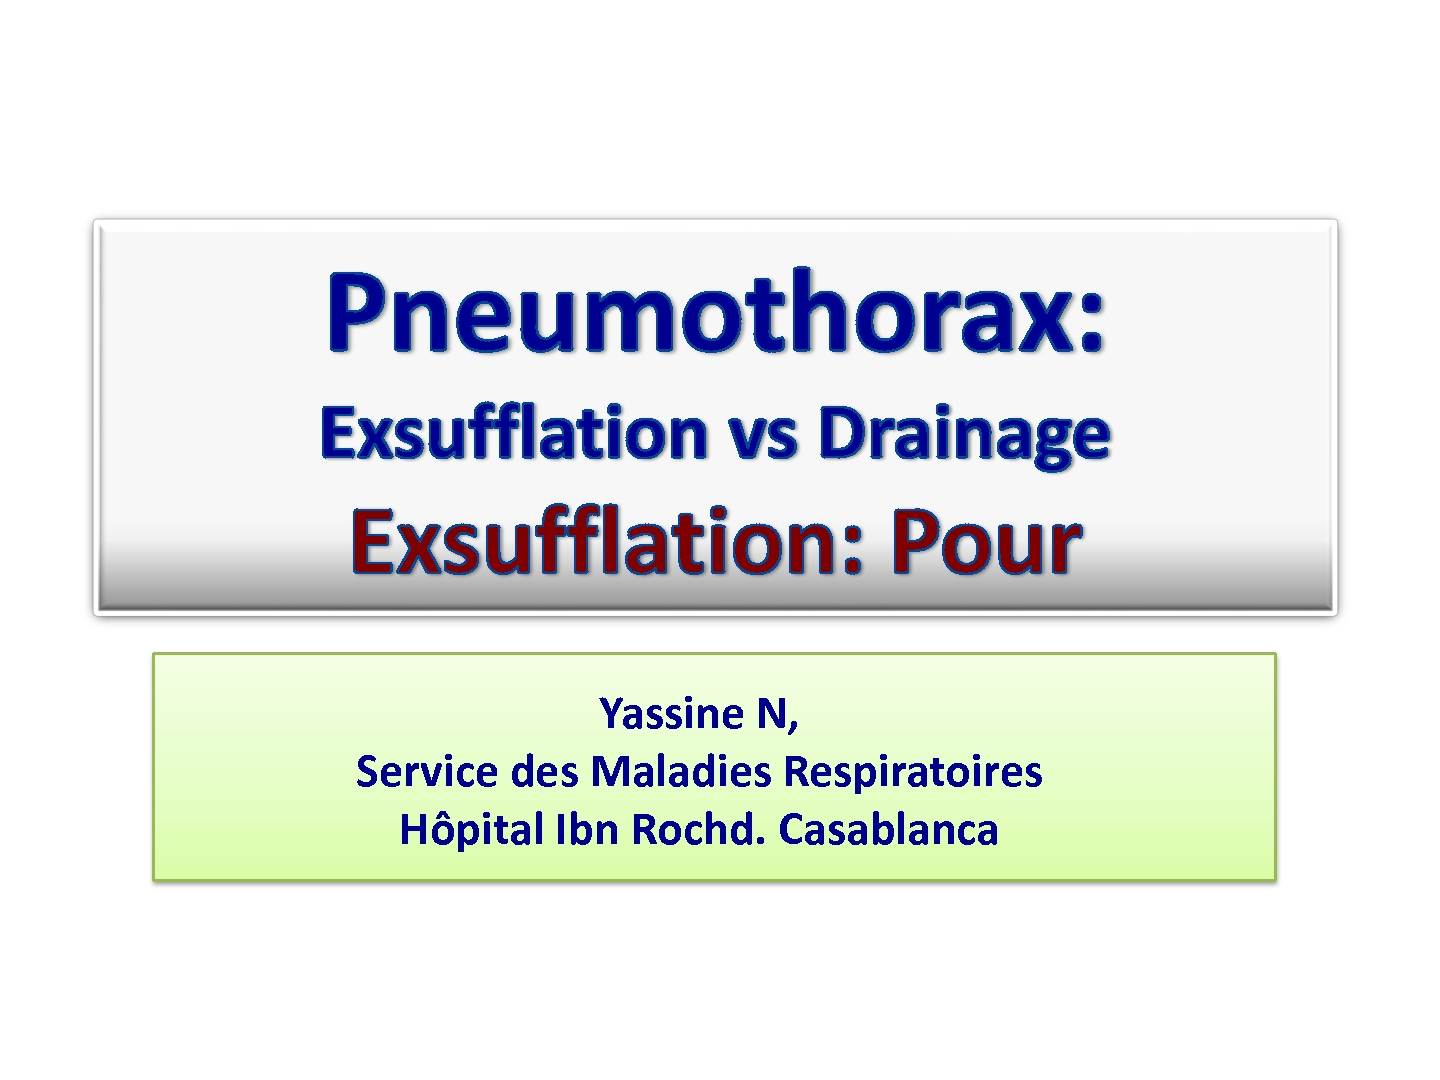 Pneumothorax, Exsufflation vs Drainage. N. YASSINE